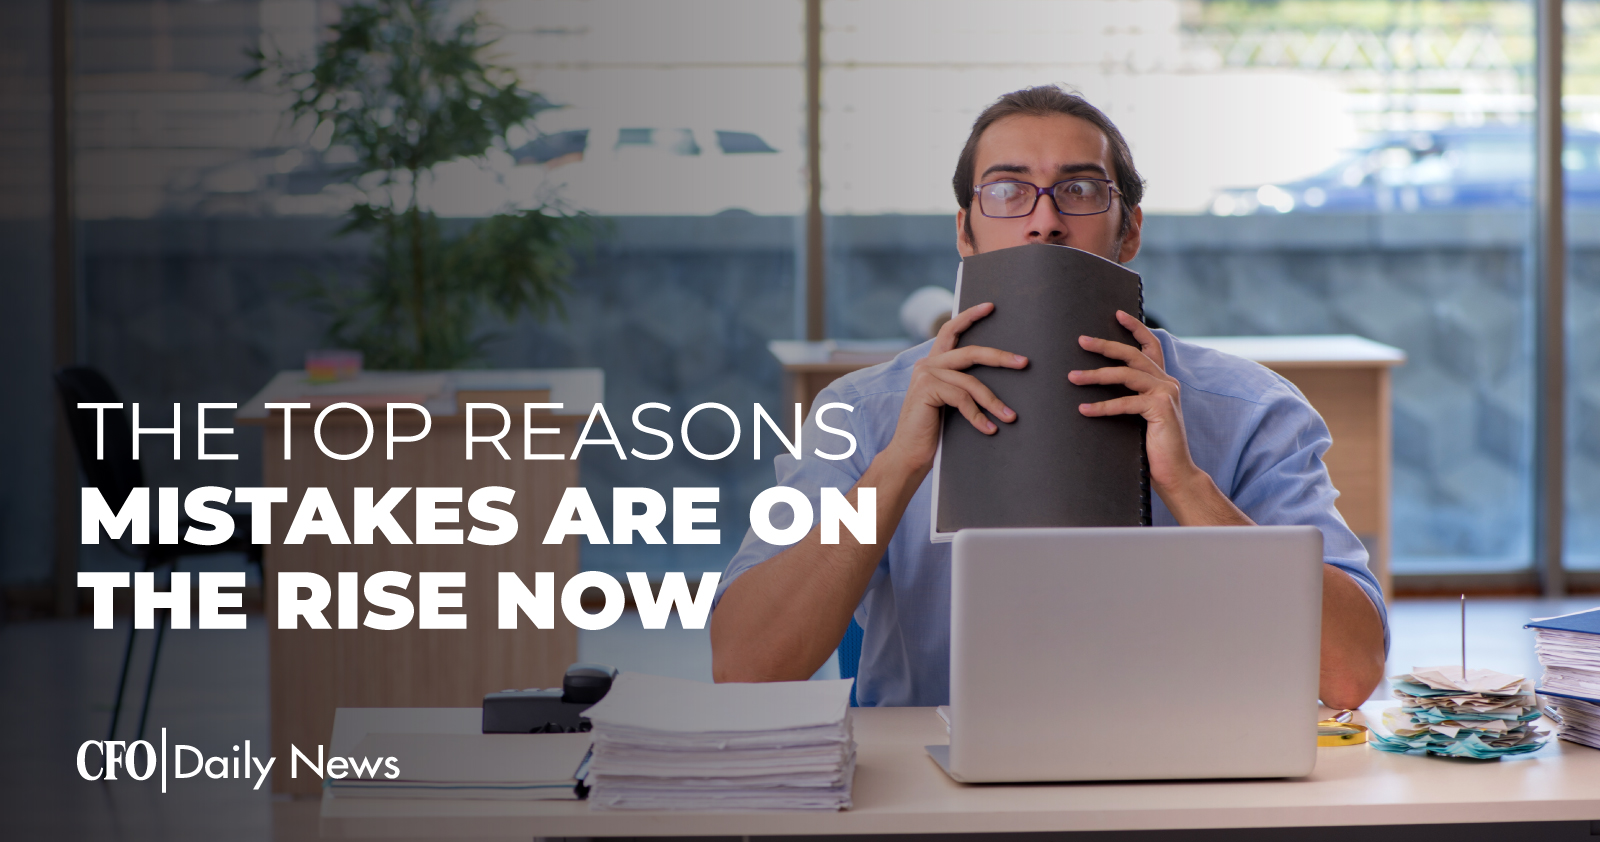 The Top Reasons Mistakes Are On The Rise Now